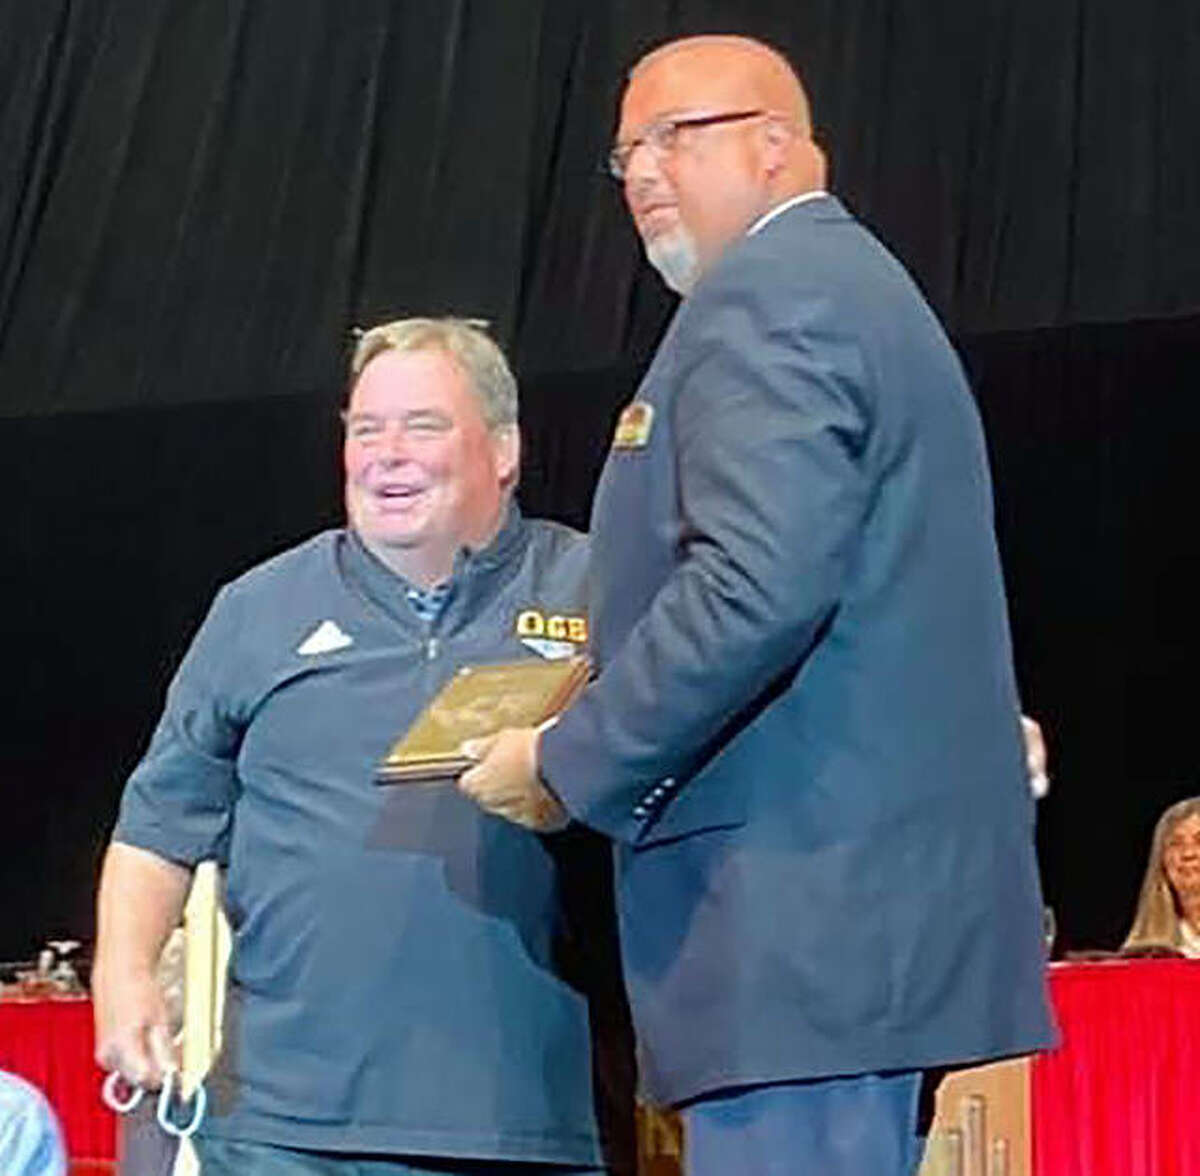 Former East Alton-Wood river head basketball coach Joe Parmentier, left, receives his Illinois Basketball Coaches Association Hall of Fame Plaque from Jeff Abell, who once was an assistant coach under Parmentier. The induction ceremony took place Saturday night at Redbird Arena at Illinois State University in Normal. Parmentier also coached basketball at Concord Triopia and at Mount Olive prior to going to EA-WR.